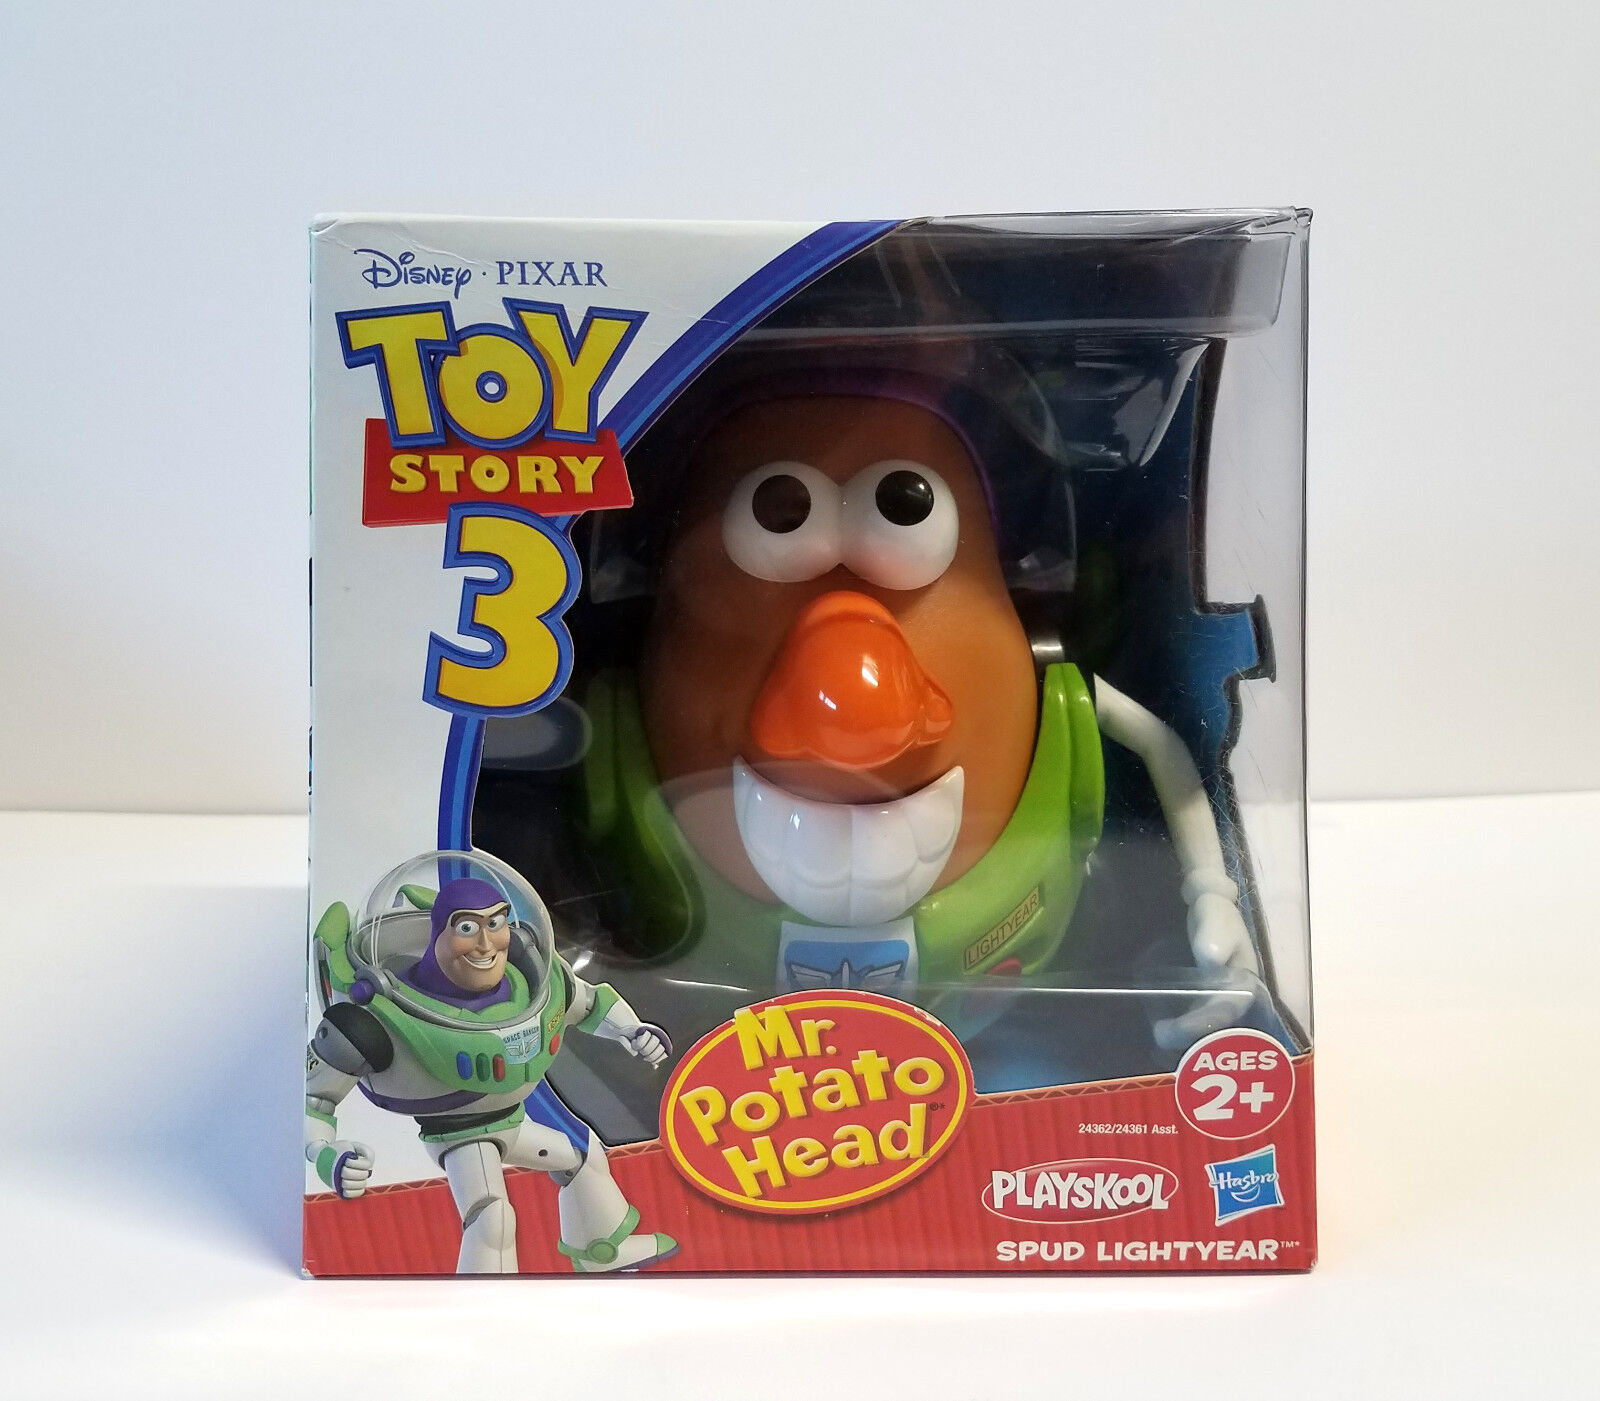 Playskool Mr. Potato Head Toy Story 3 Movie -  Spud lumièreyear NIB Sealed  meilleur choix